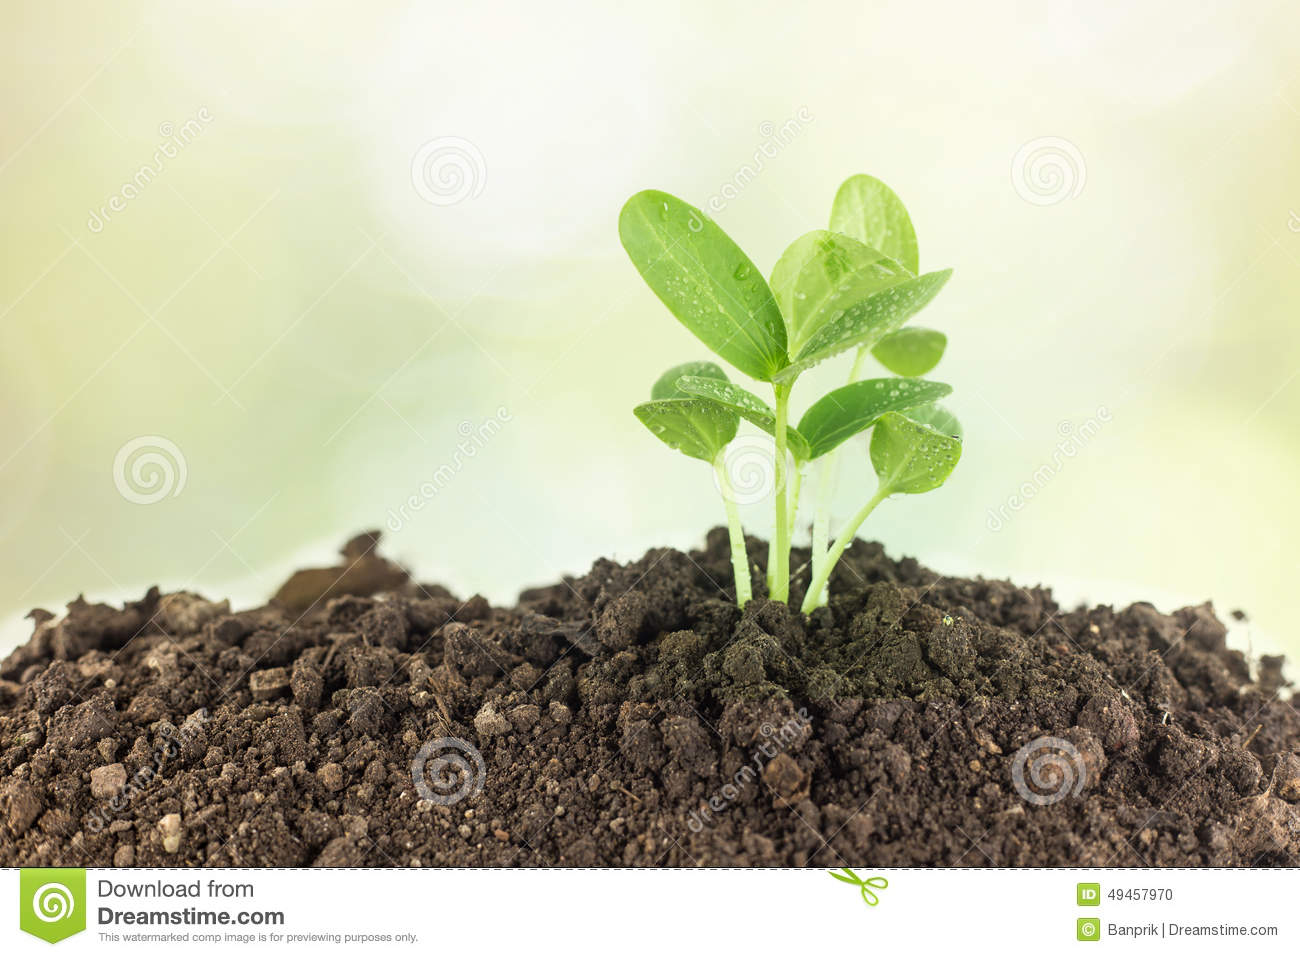 Young plants growing on soil against nature stock photo for Soil young s modulus